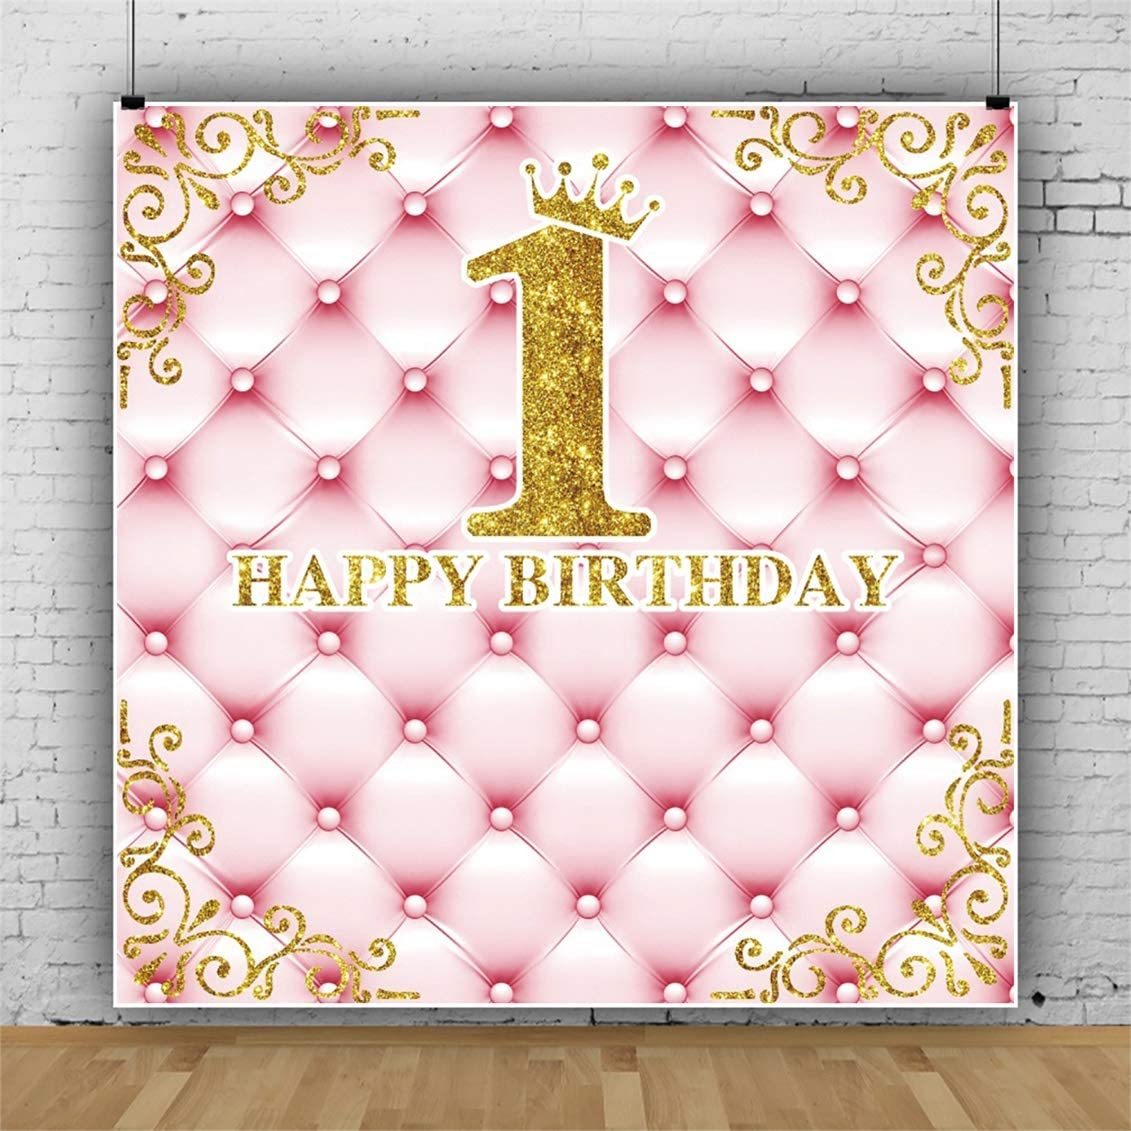 Yeele 5x5ft Girl Birthday Party Backdrop Little Princess 1st First Birthday Photography Background Sweet Pink Royal Crown for Girl Artistic Portrait Cake Table Decorations Photo Shoot Props